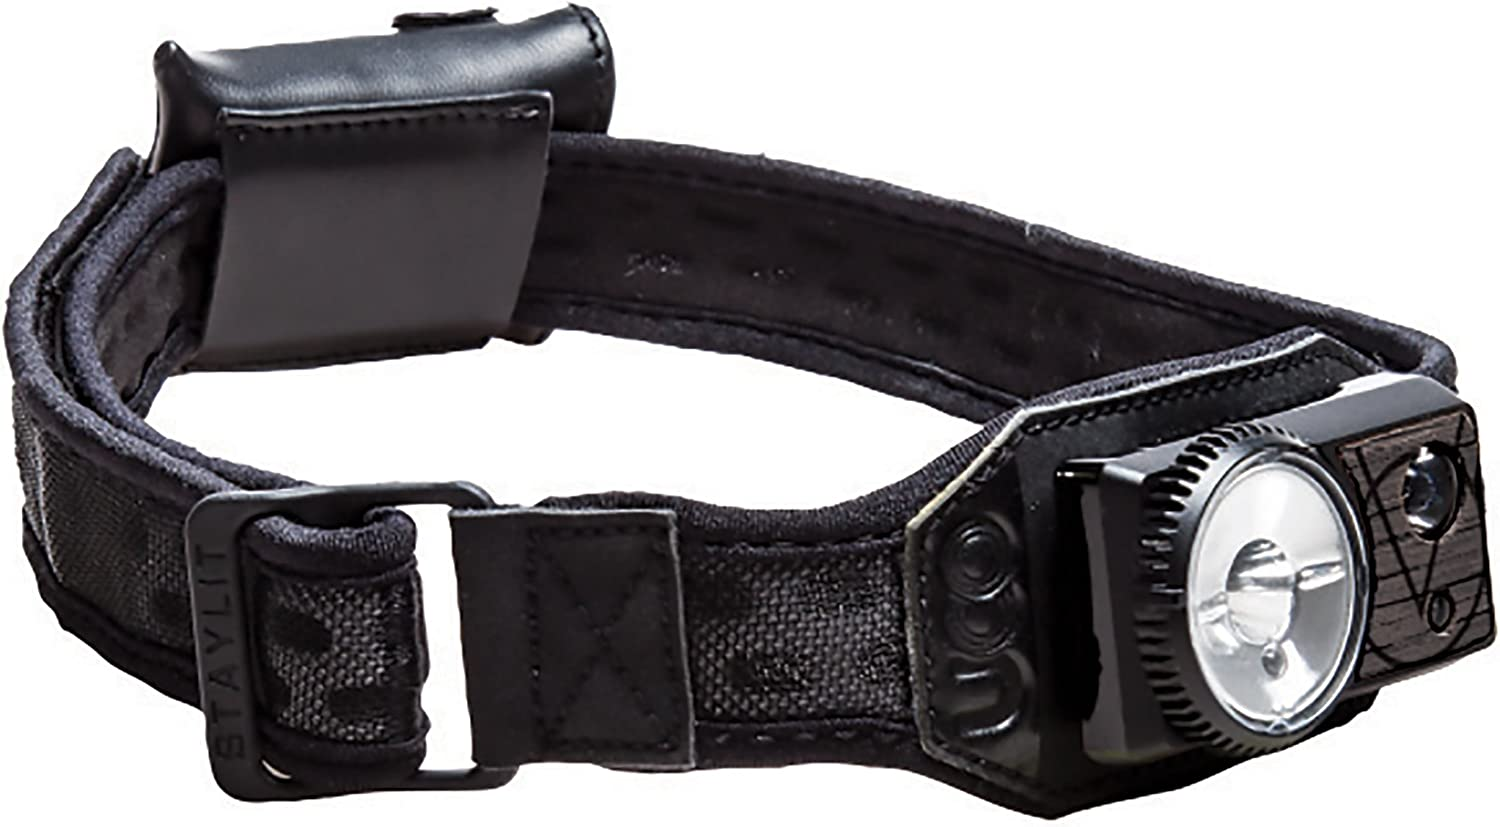 UCO Vapor 300 Lumen Rechargeable LED Headlamp with Variable Brightness Dial Control and Adjustable Strap, Black Mesh